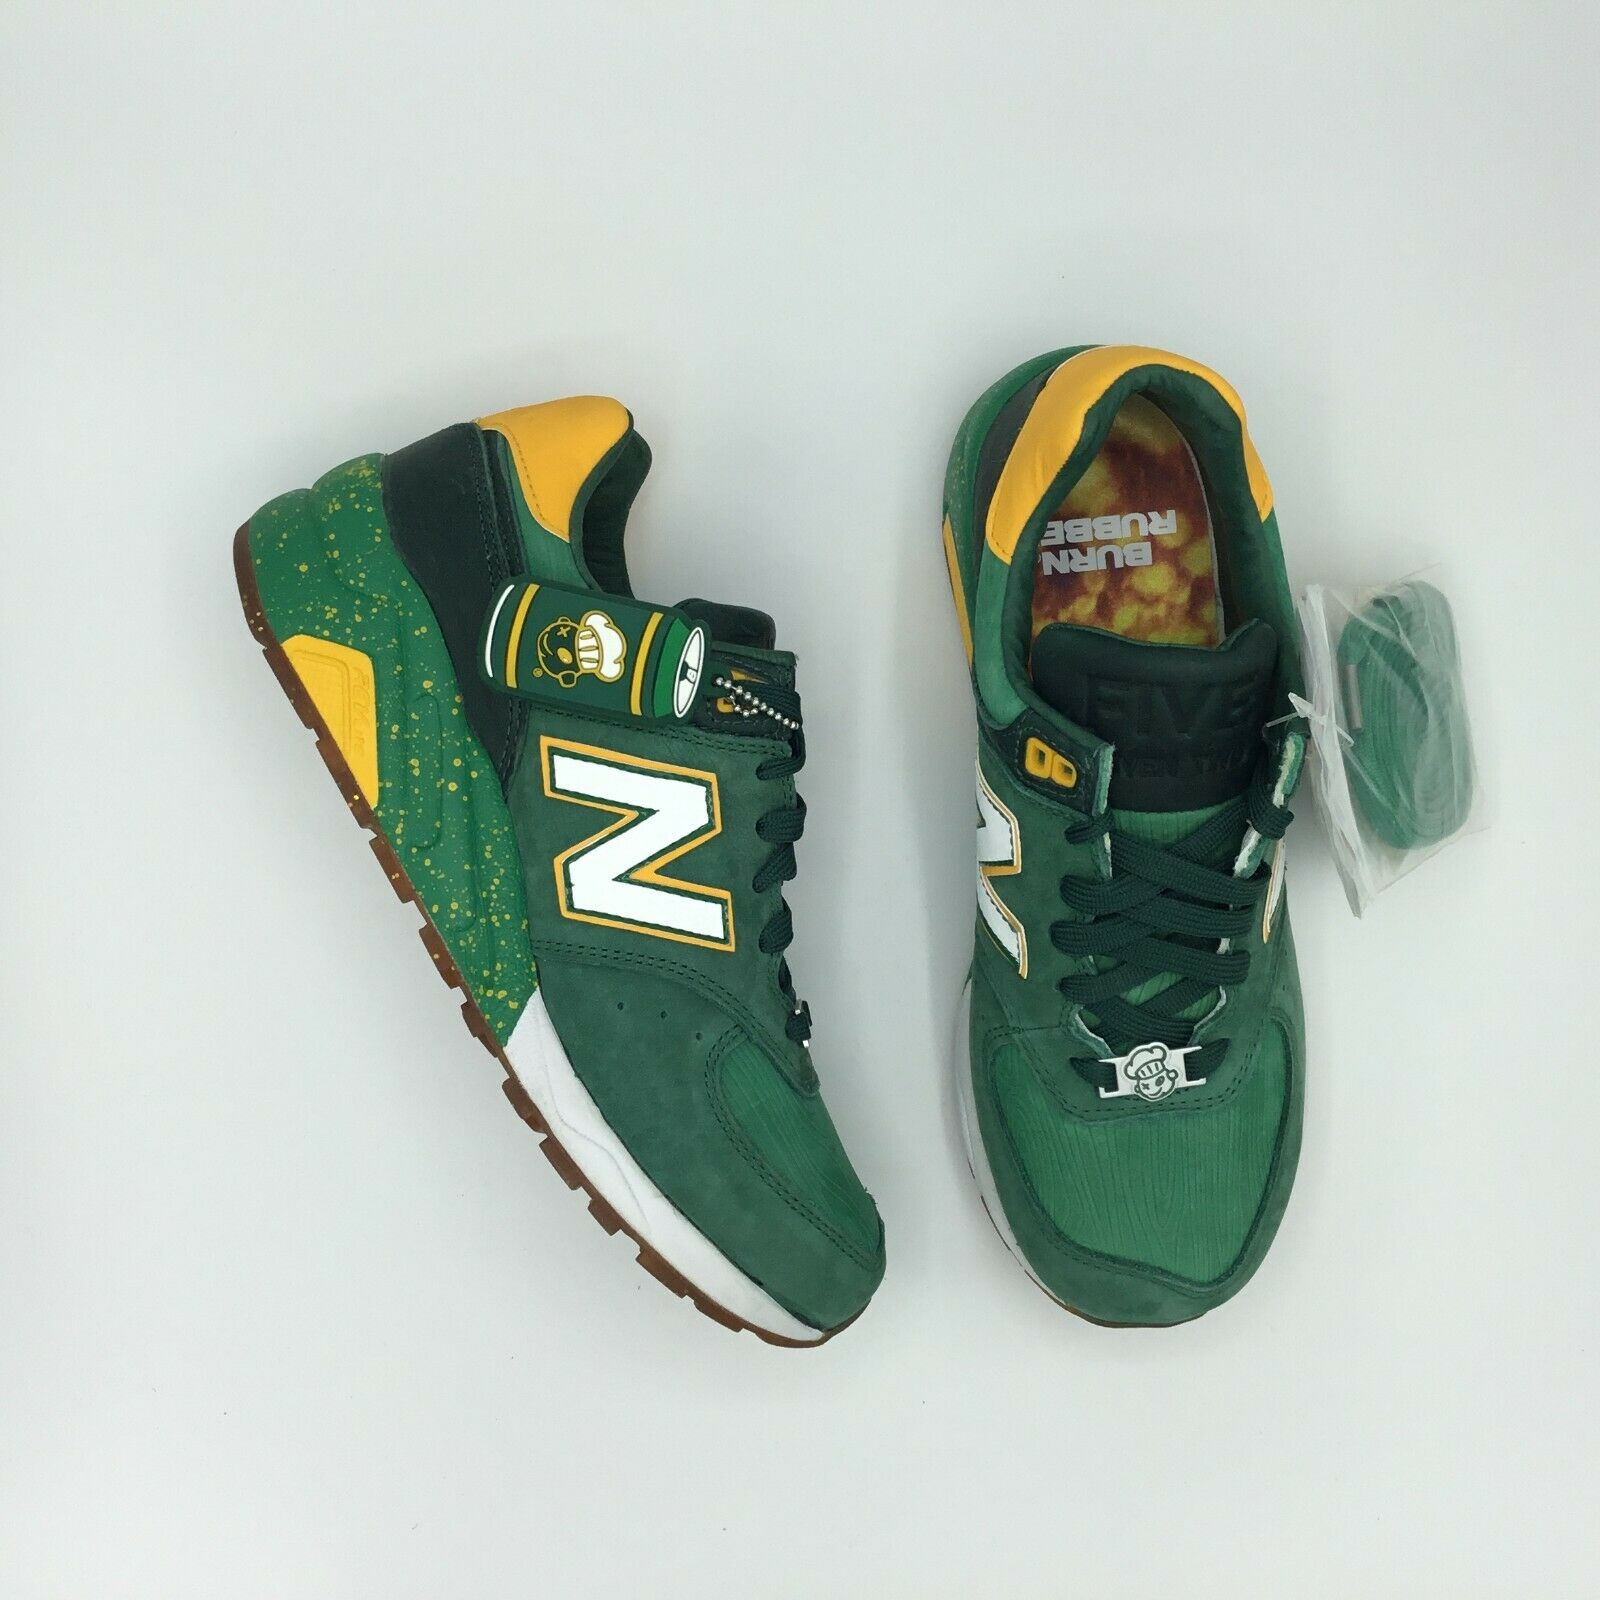 New Balance 572 Burn Rubber Vernors